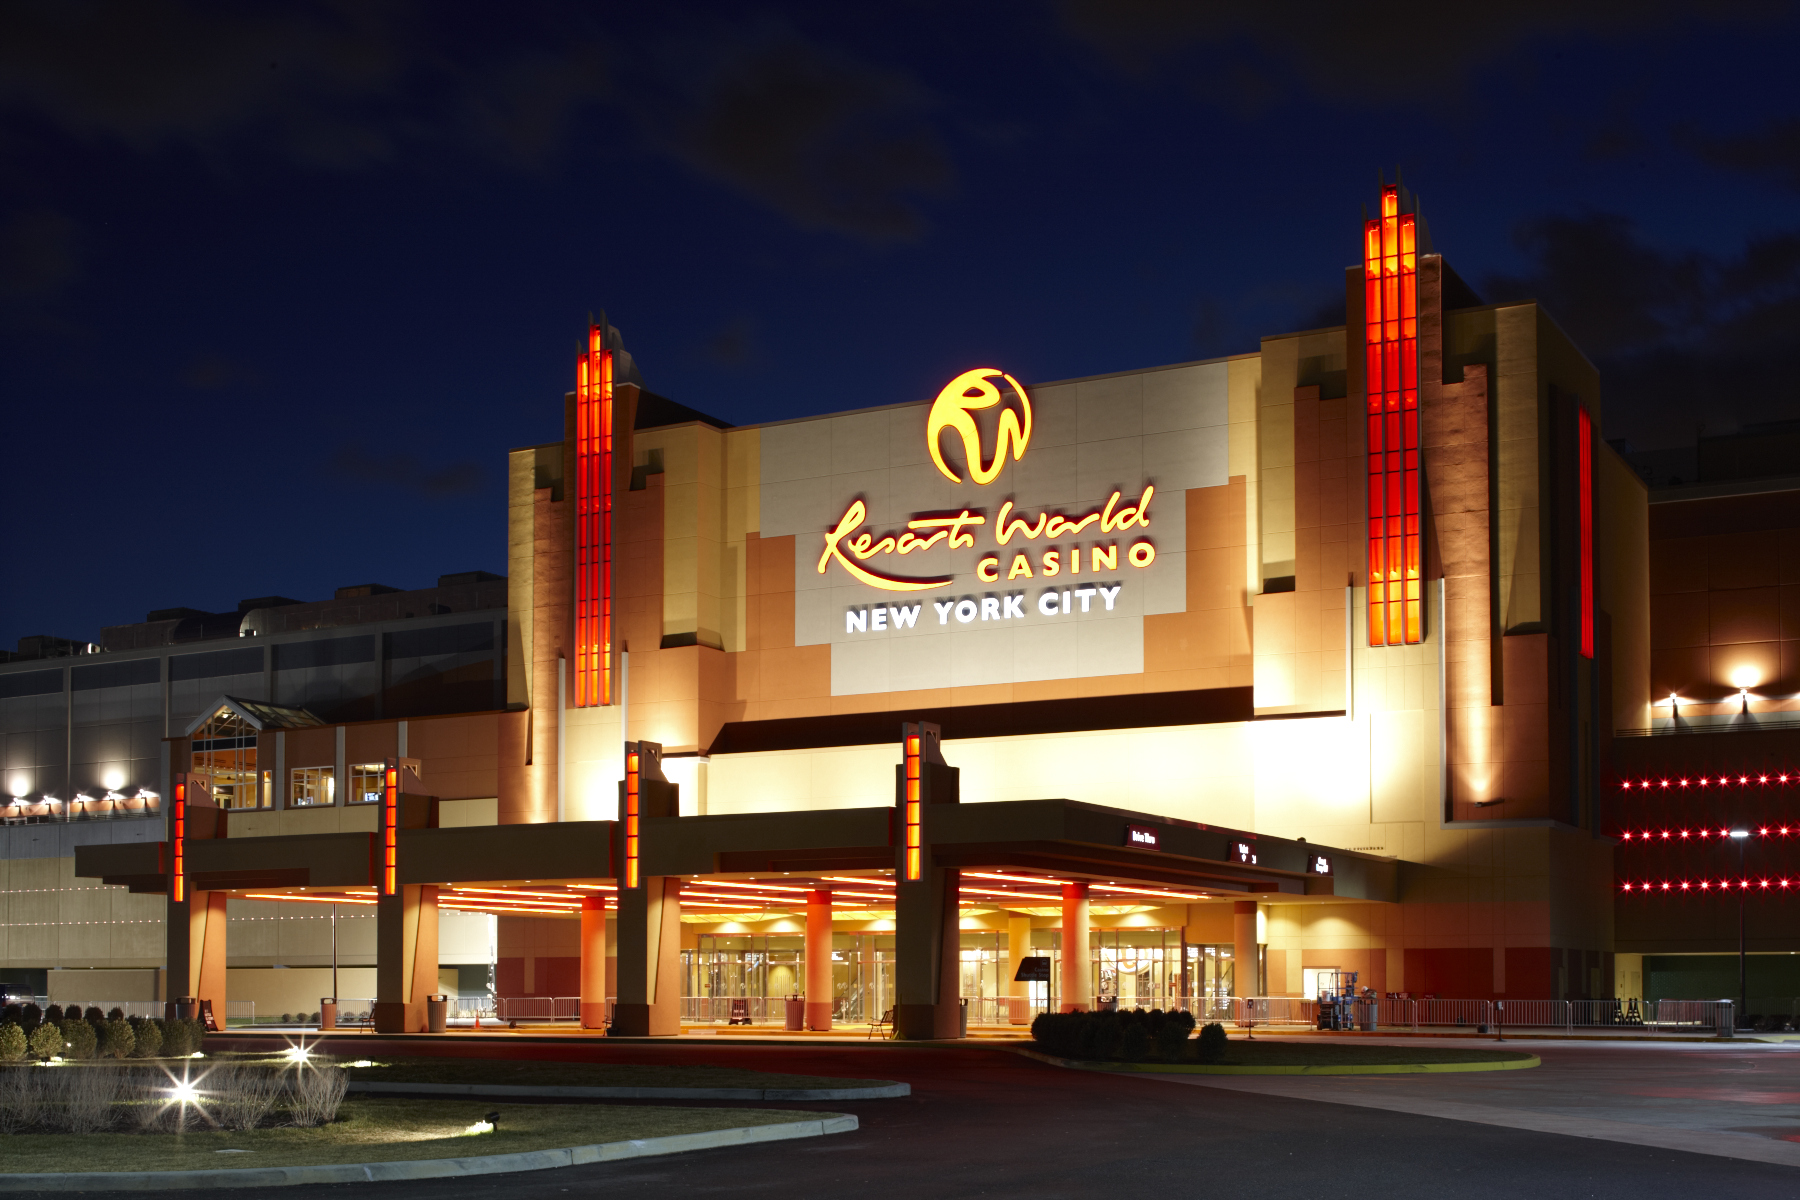 Mgm grand casino restaurantes detroit